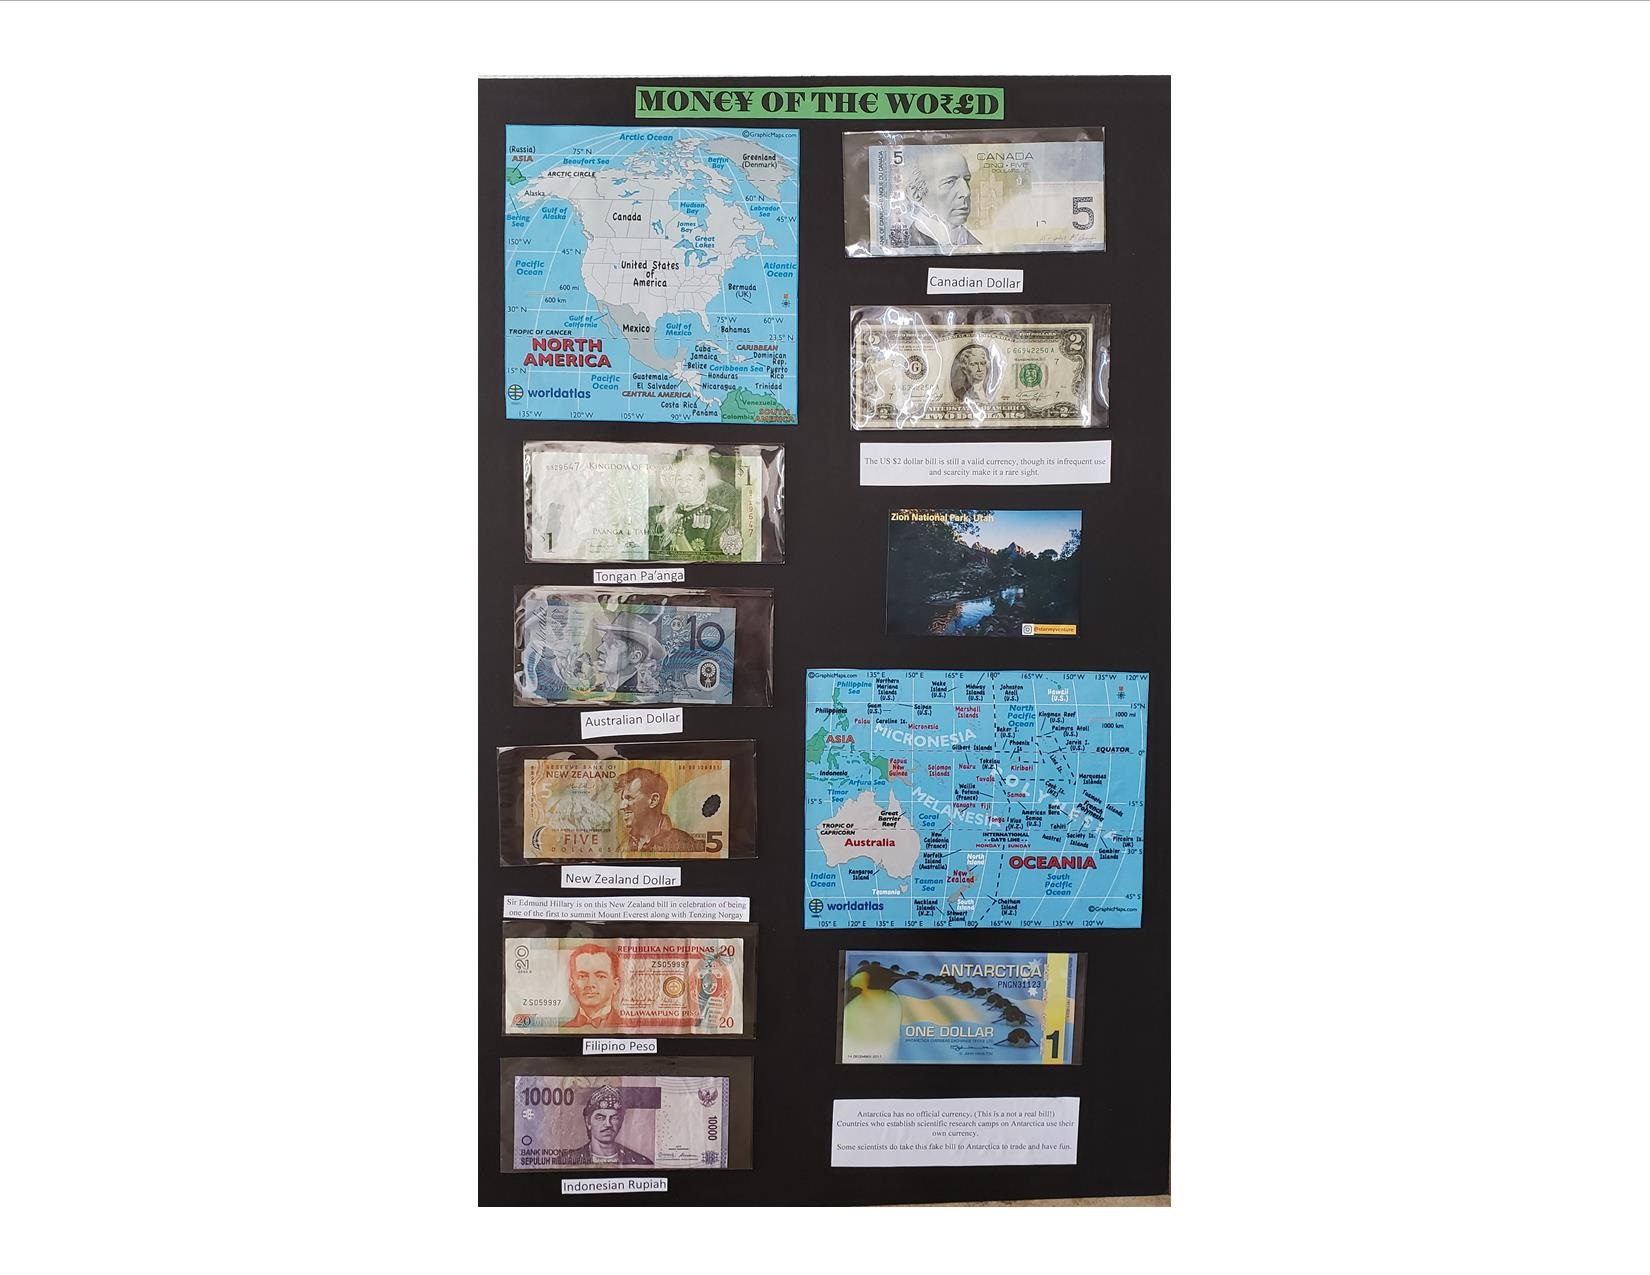 """Display board titled """"Money of the World"""" showing 8 currencies and regional maps"""